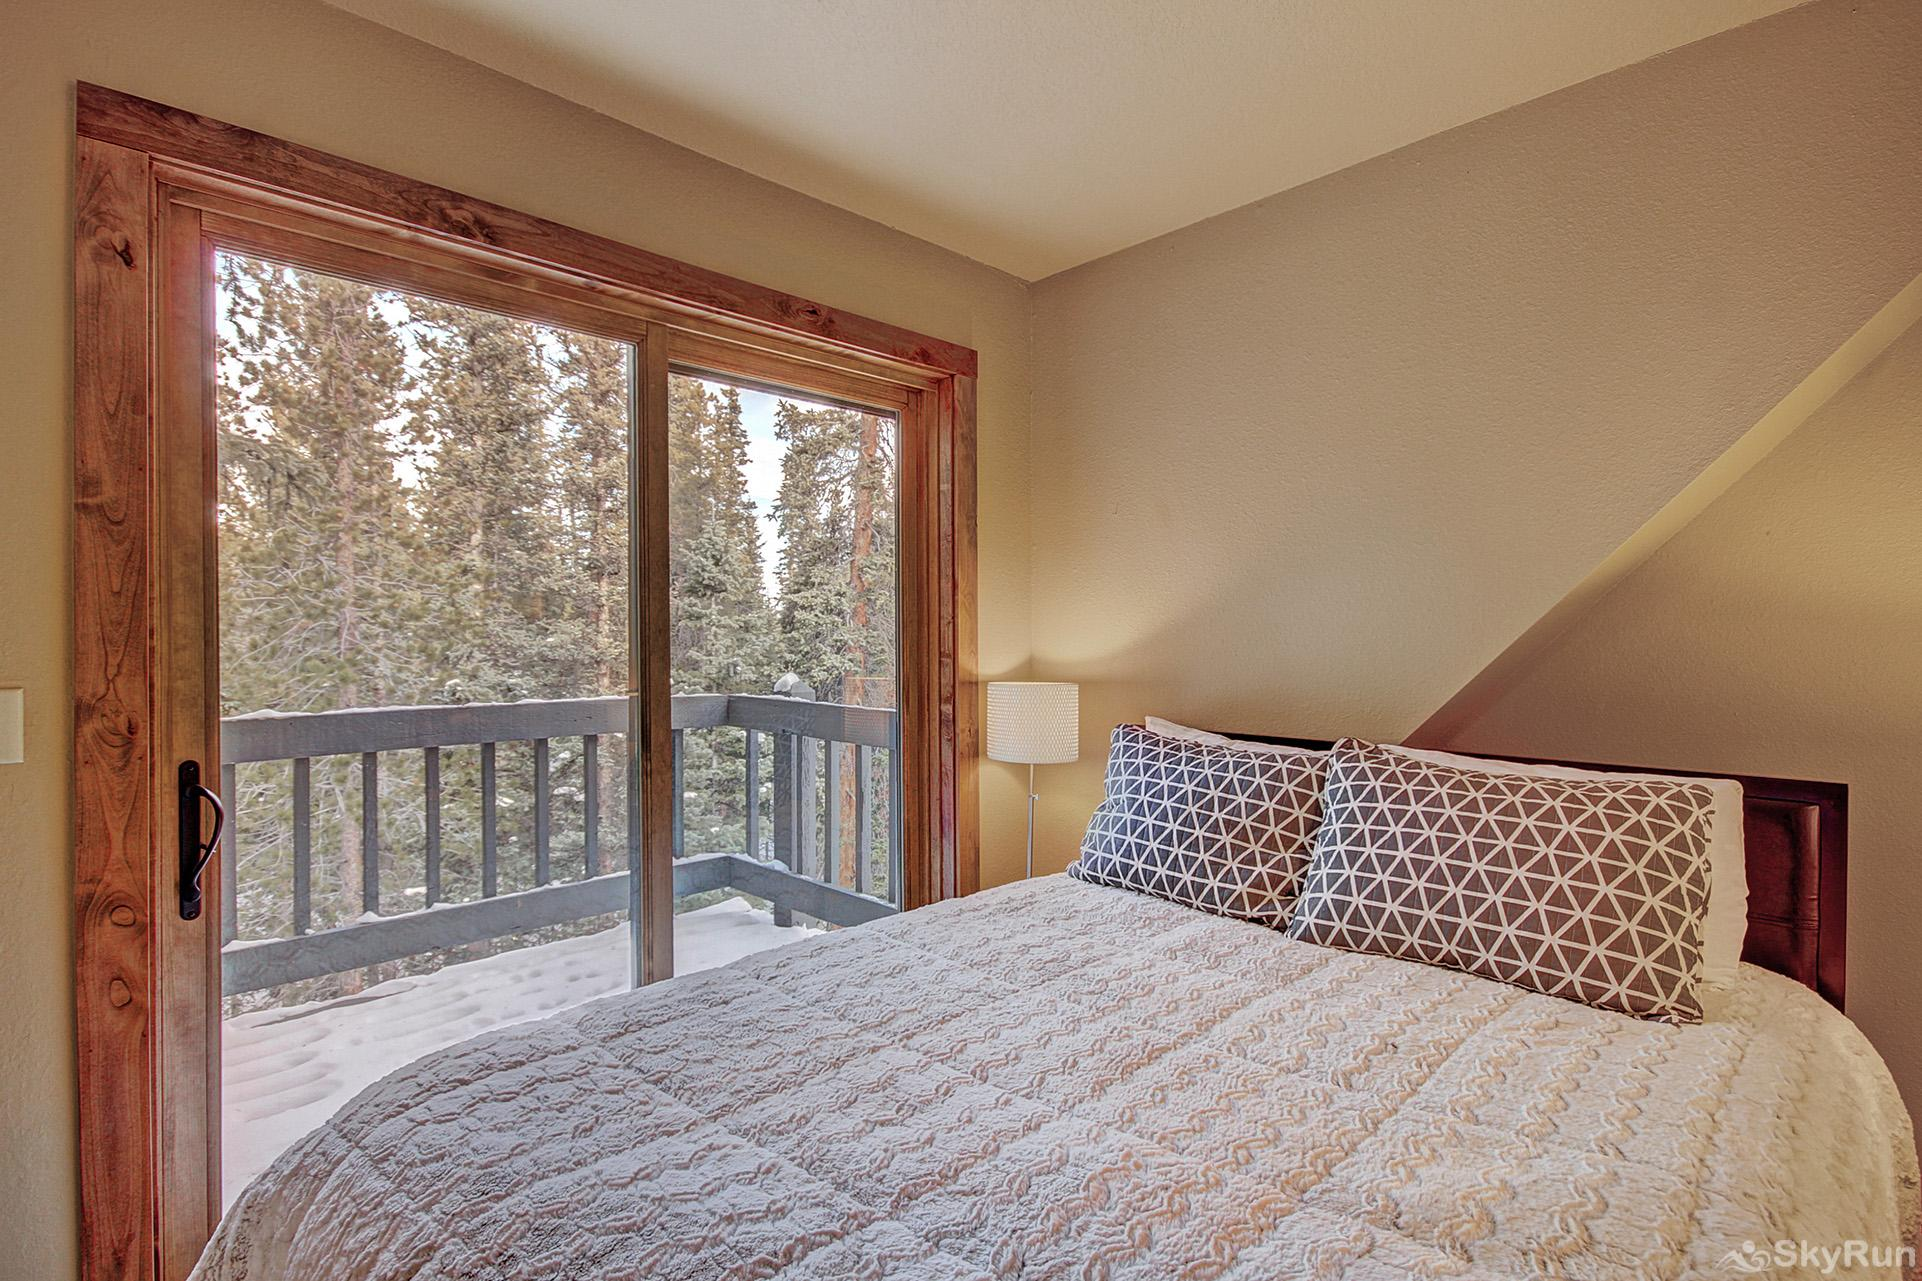 Summit Solitude Estate Queen bedroom in the carriage house